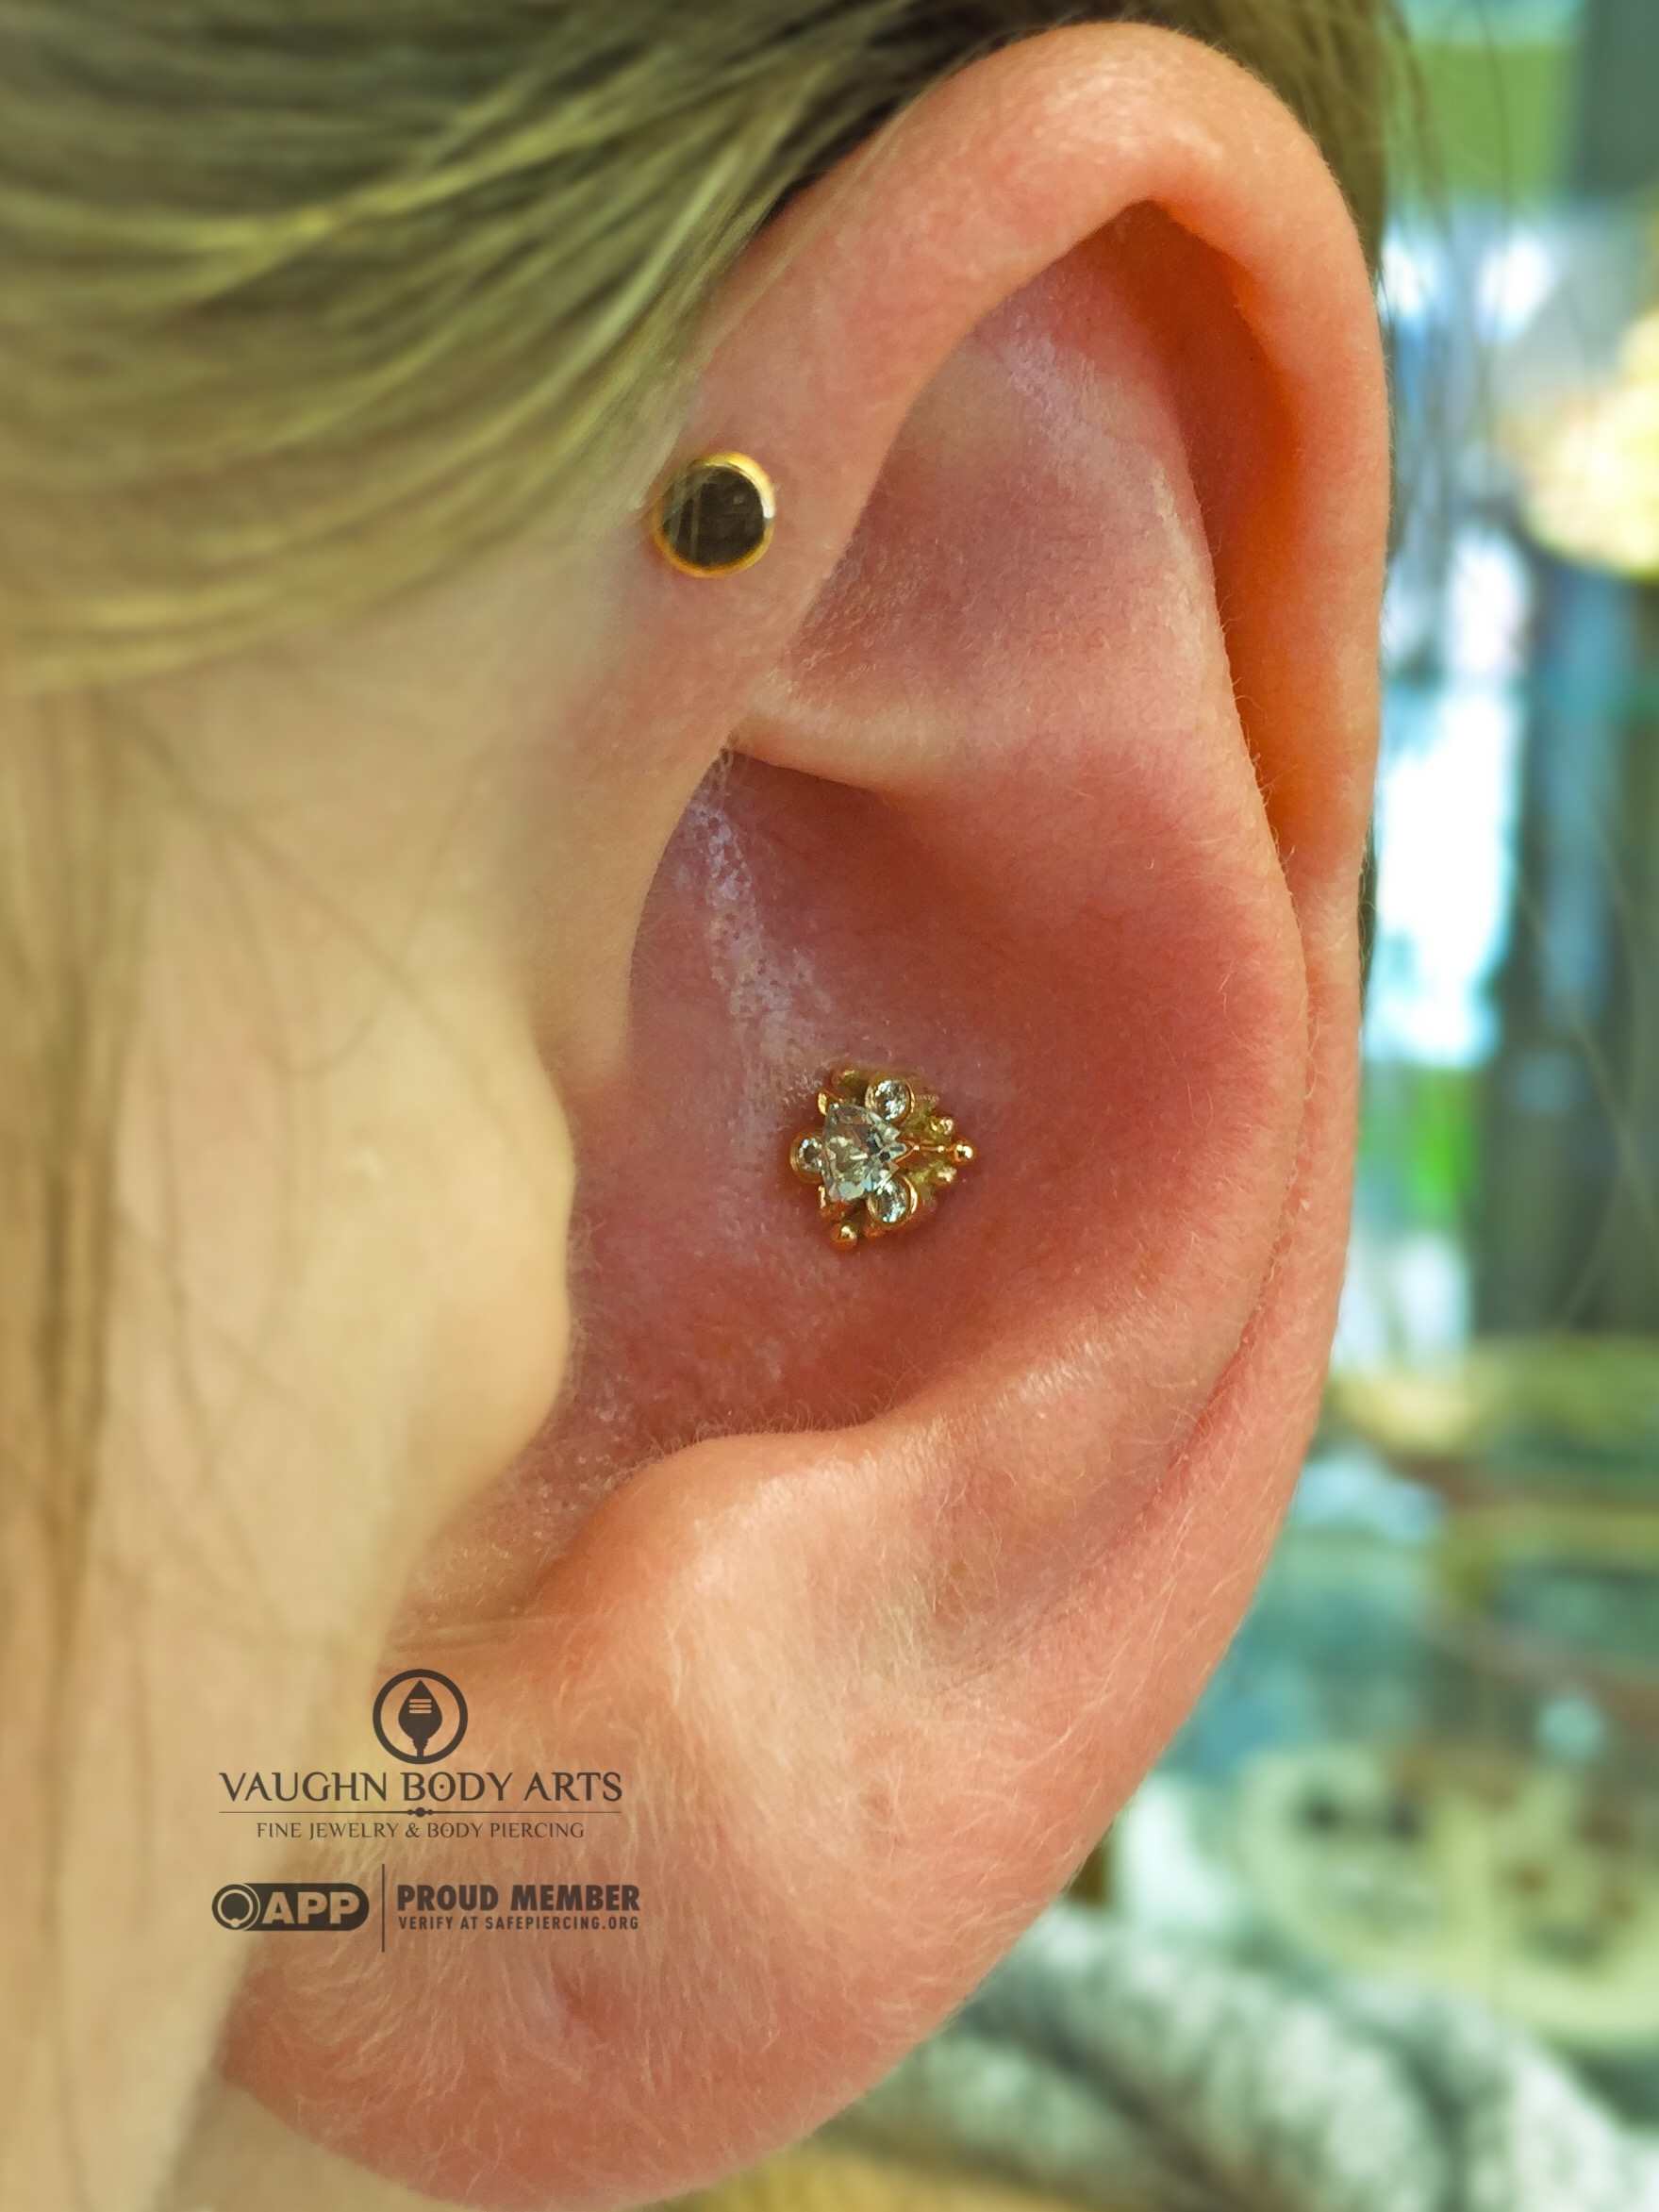 """Conch piercing with a 14k yellow gold """"Helena"""" end featuring genuine Aquamarine and cz's from BVLA."""